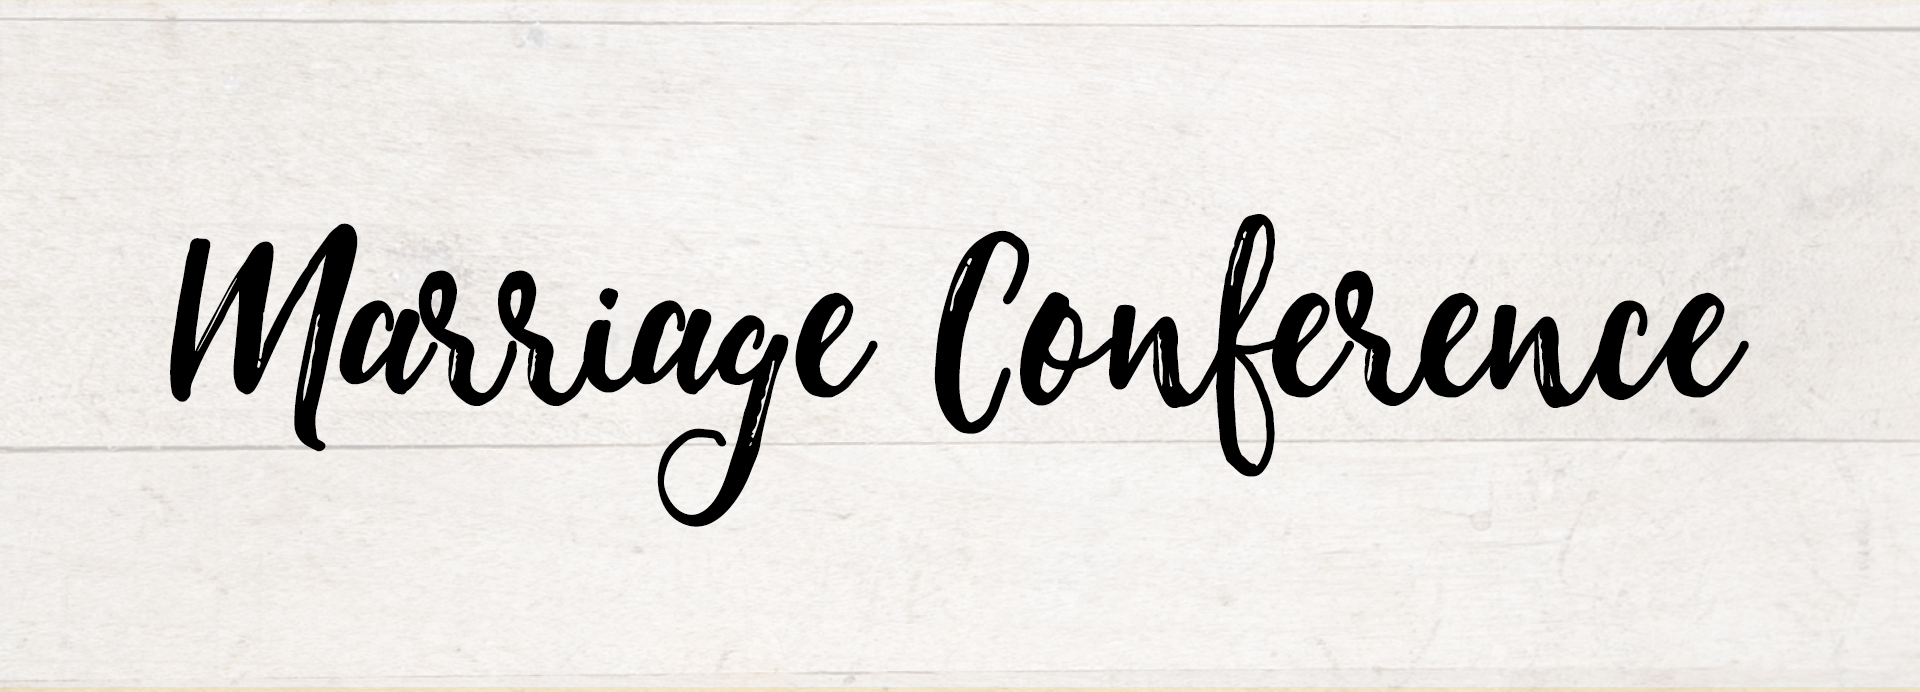 marriage conference_banner image.jpg